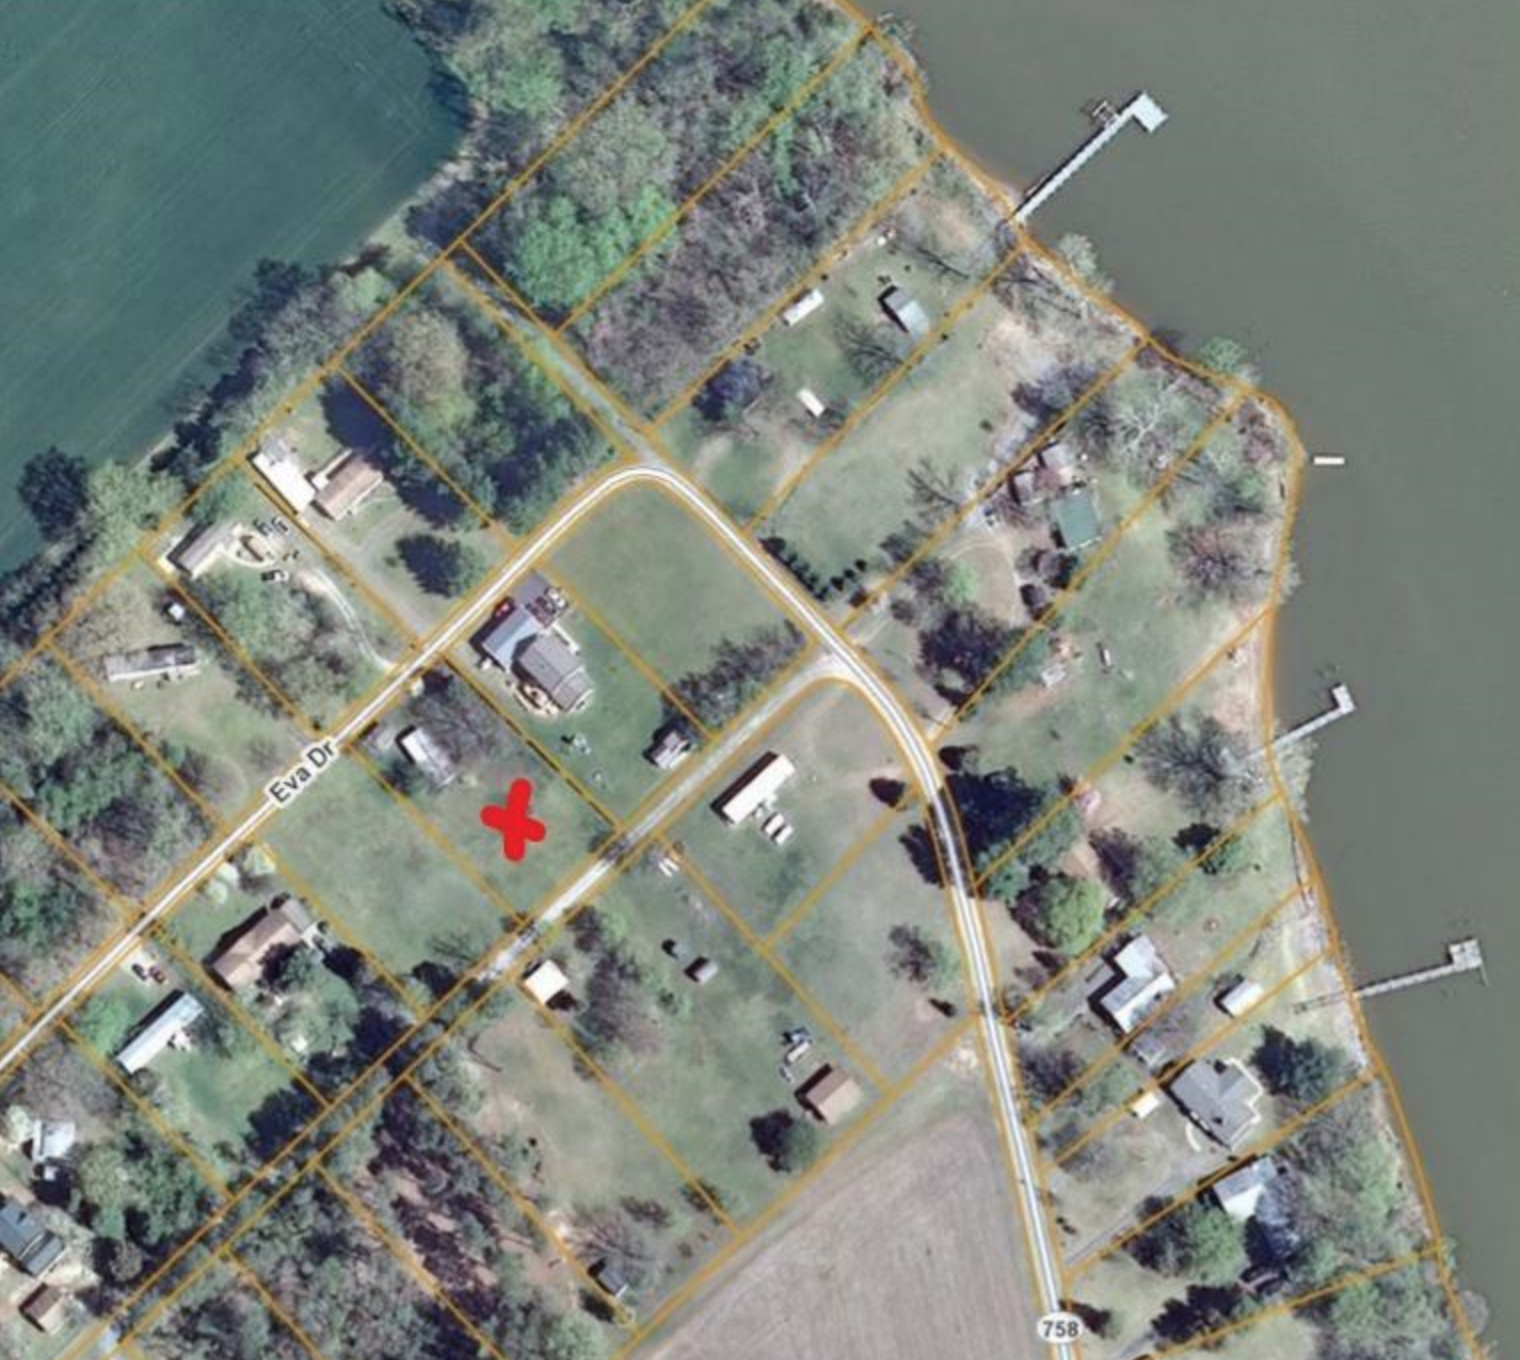 Featured land: Lot on the Rappahannock River